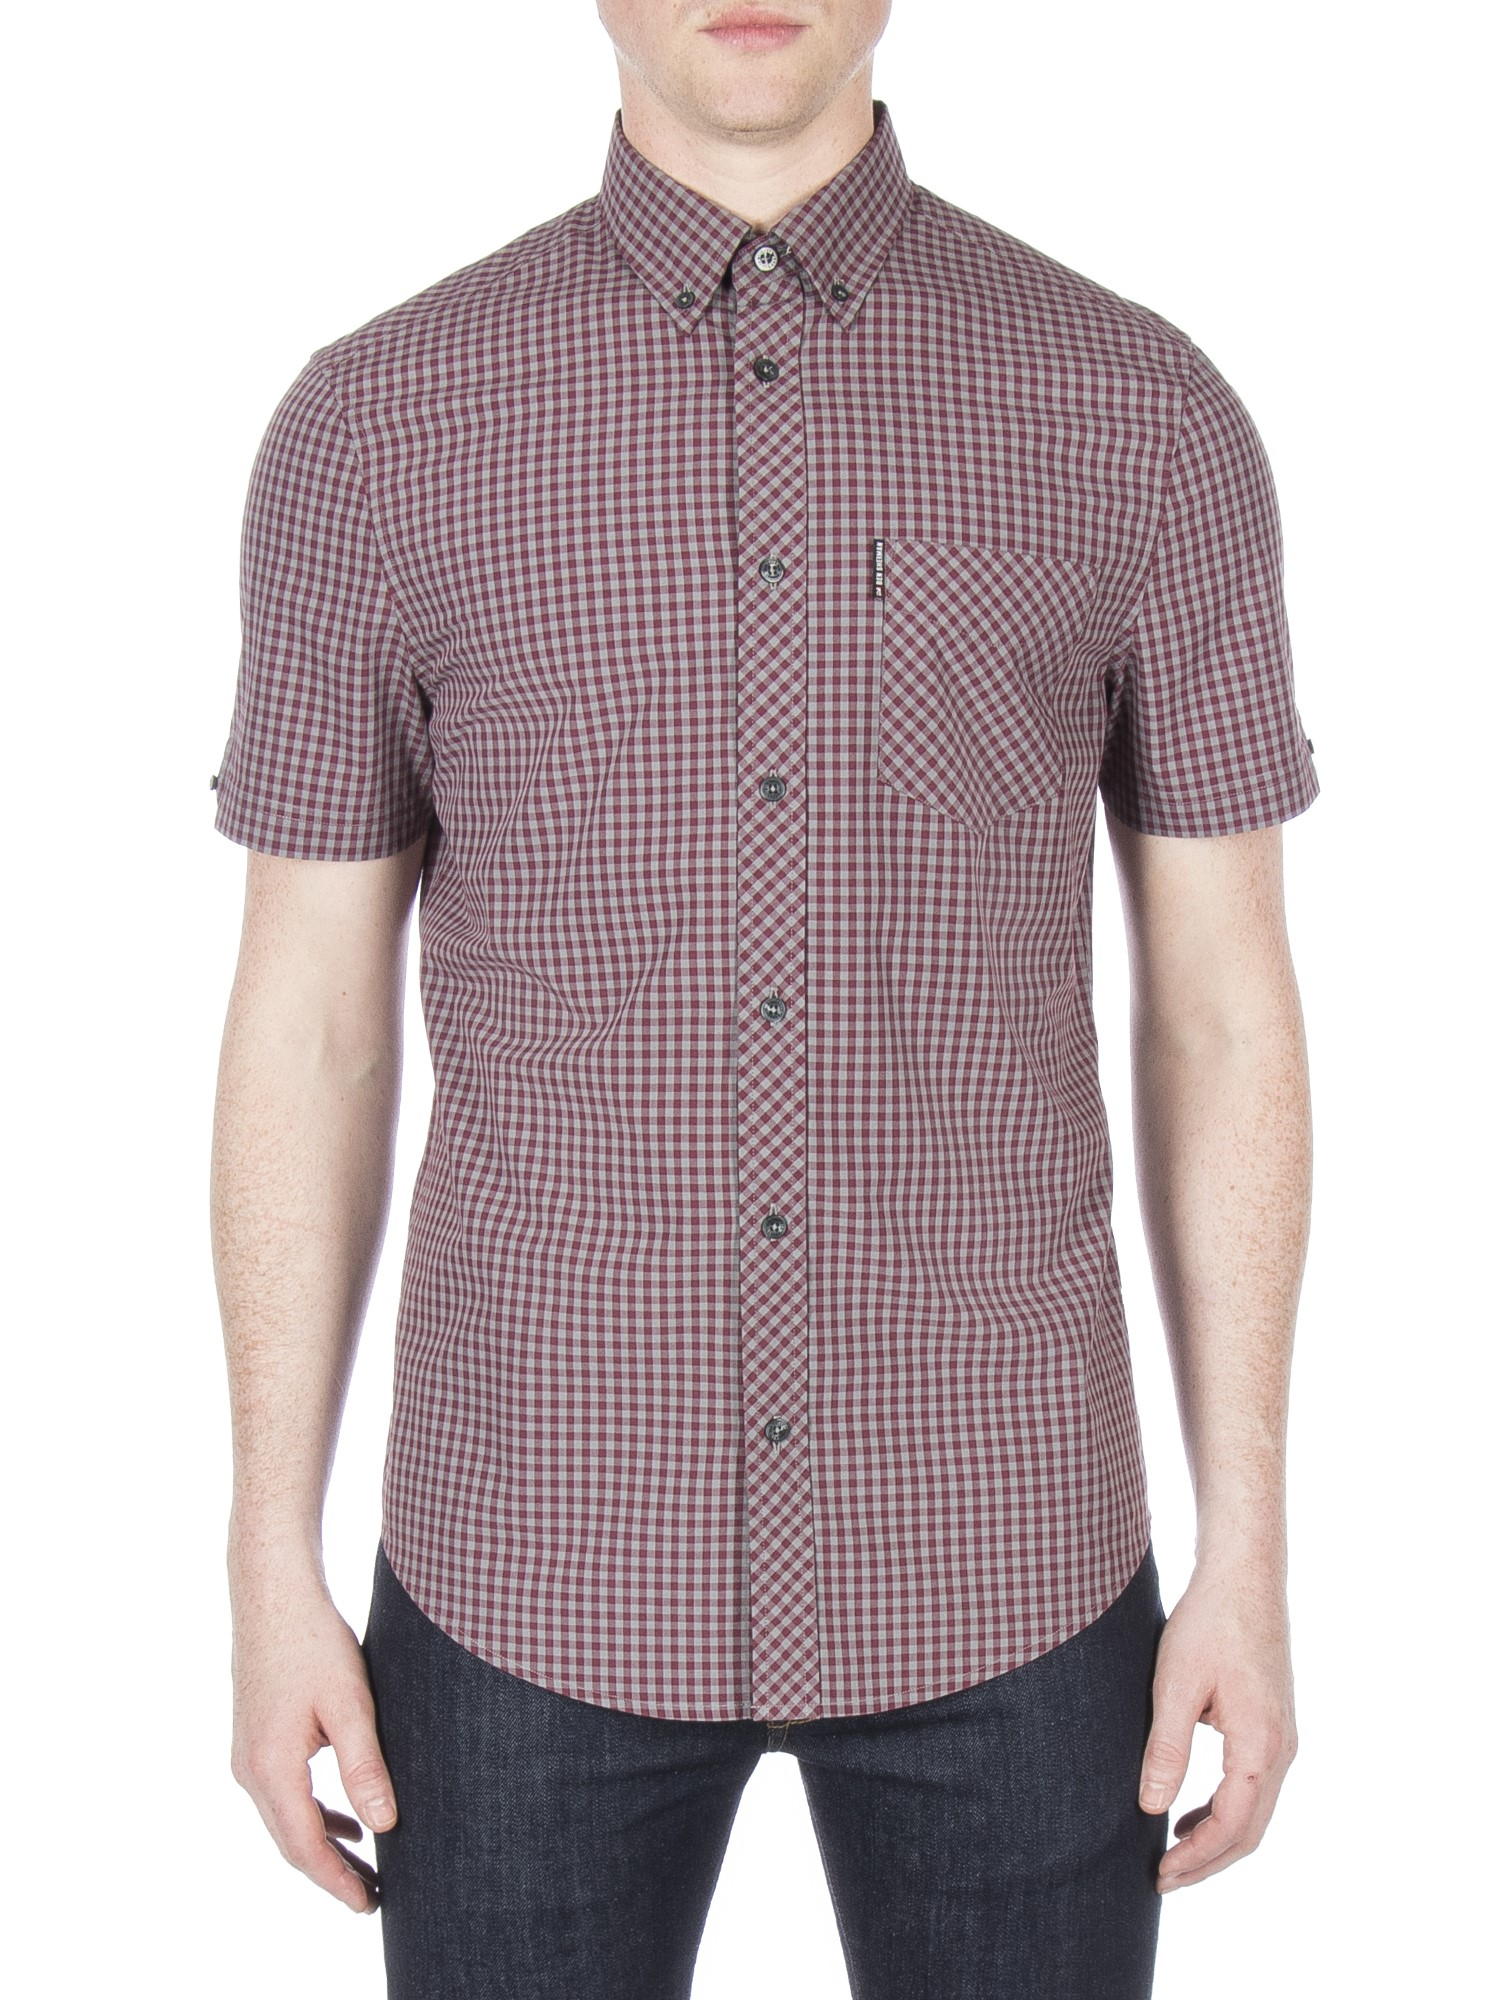 Ben Sherman Wine Short Sleeve Brushed Gingham Shirt